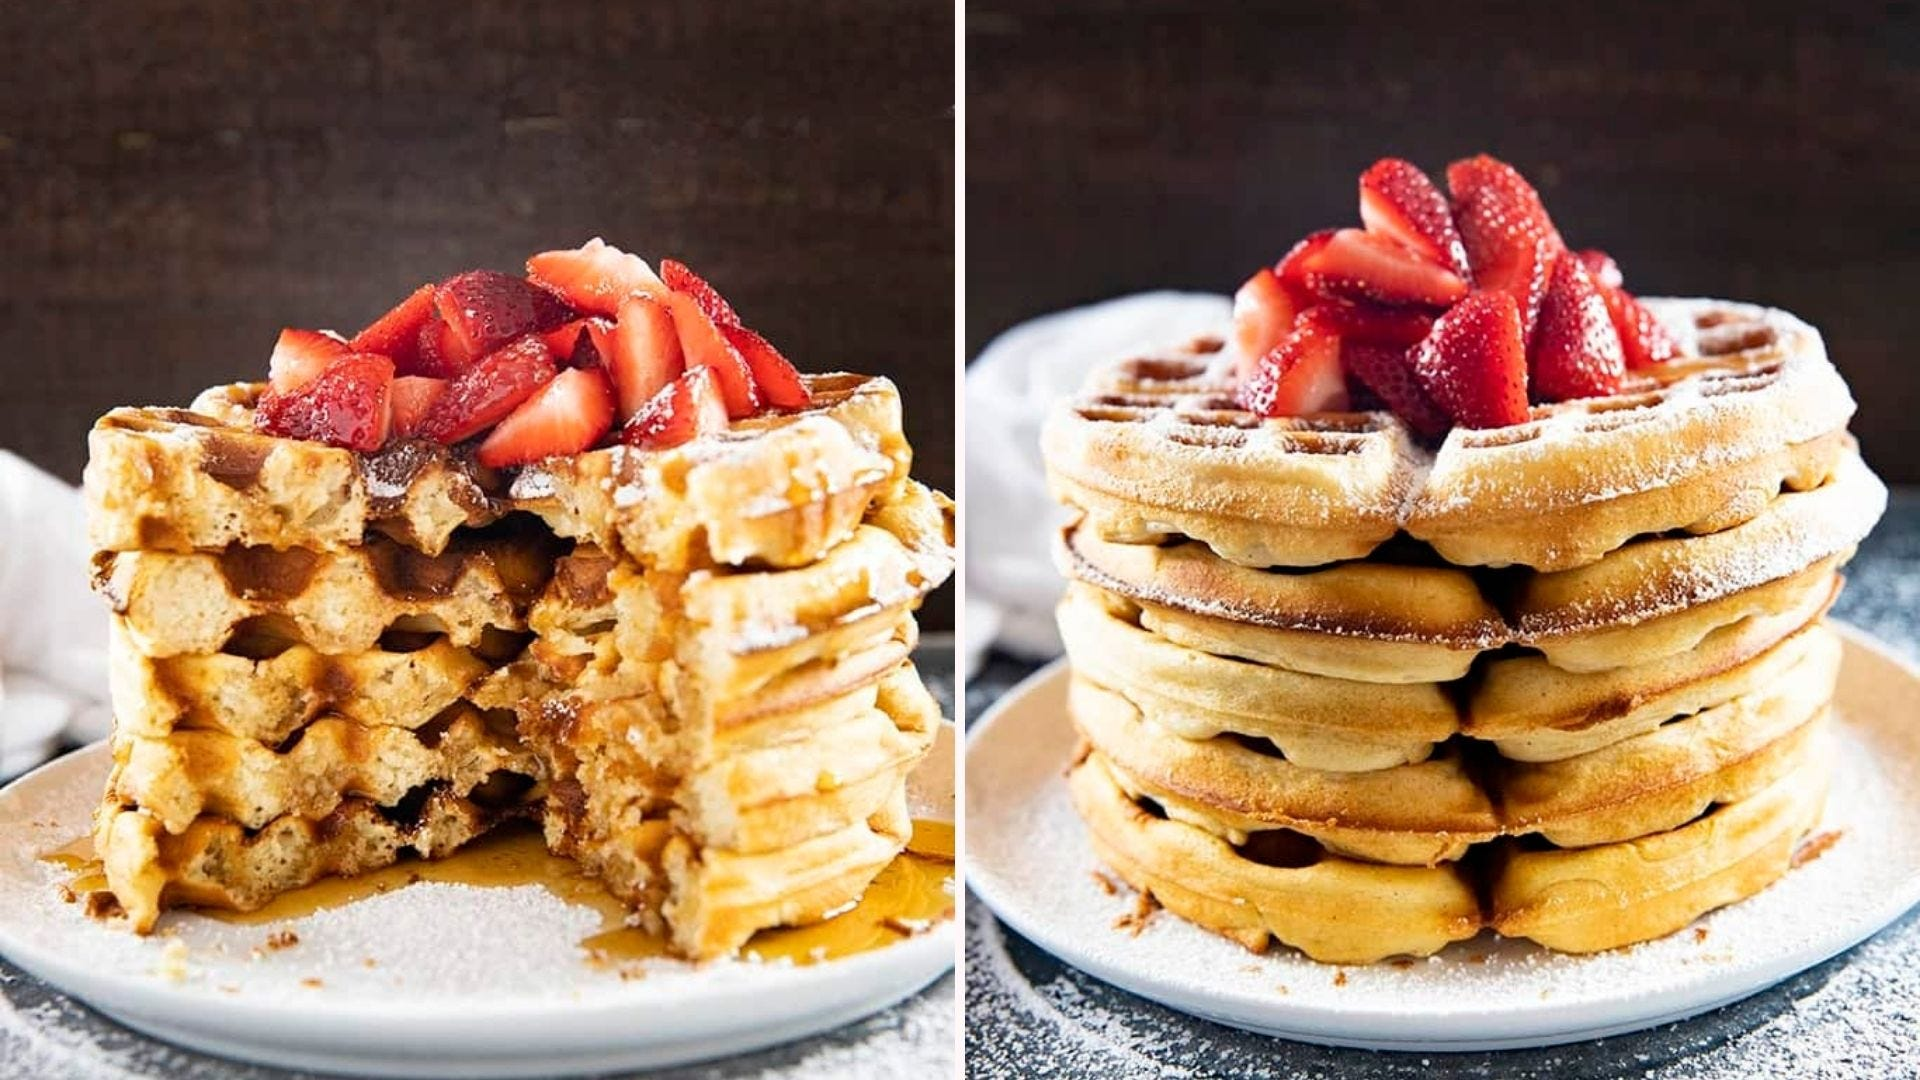 A stack of Belgian waffles with fresh strawberries on top that's been half eaten, next to a fresh, full stack.